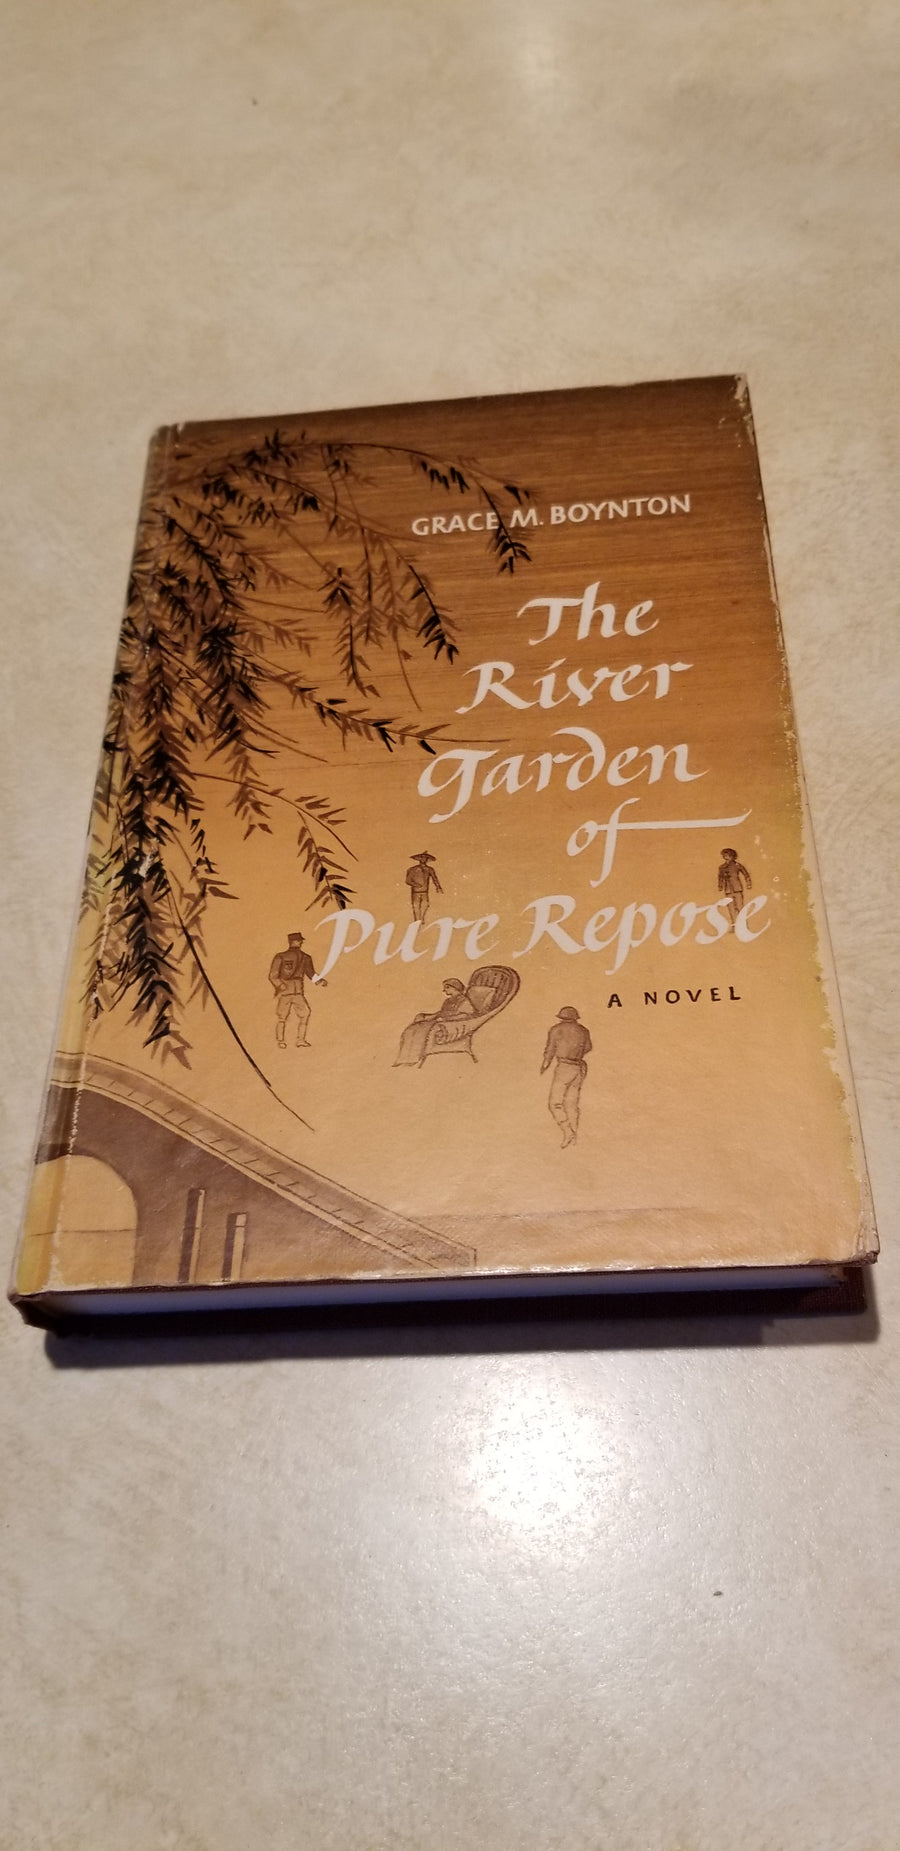 The river garden of pure repose, boynton, 1952